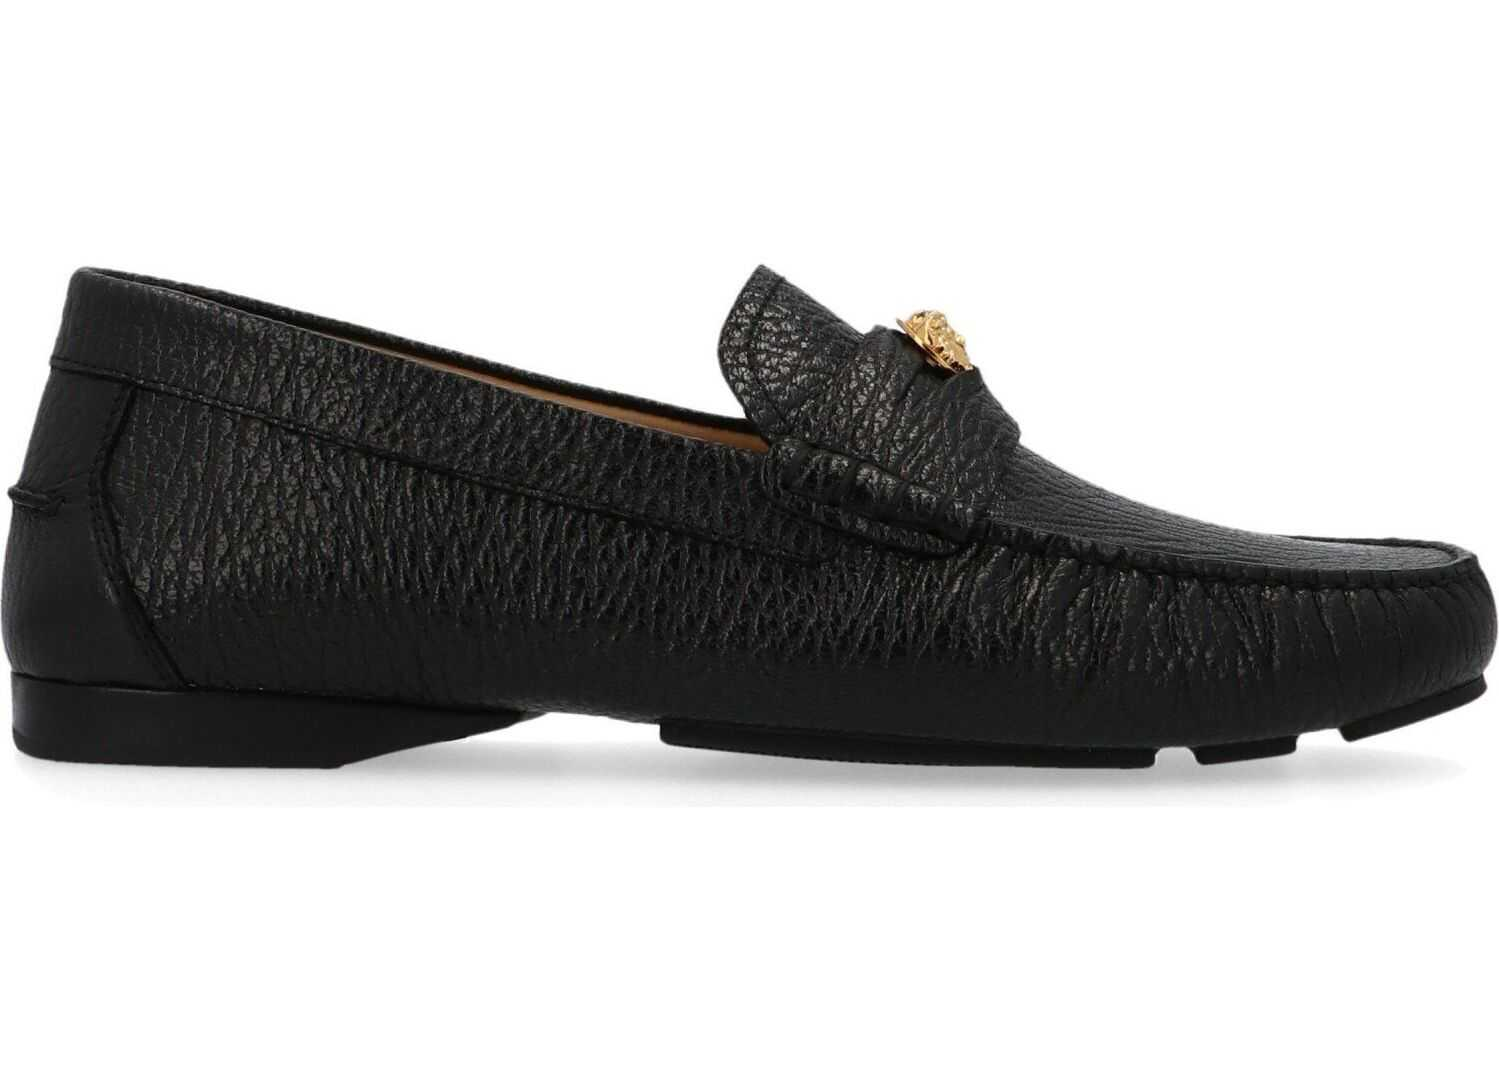 Versace Leather Loafers BLACK